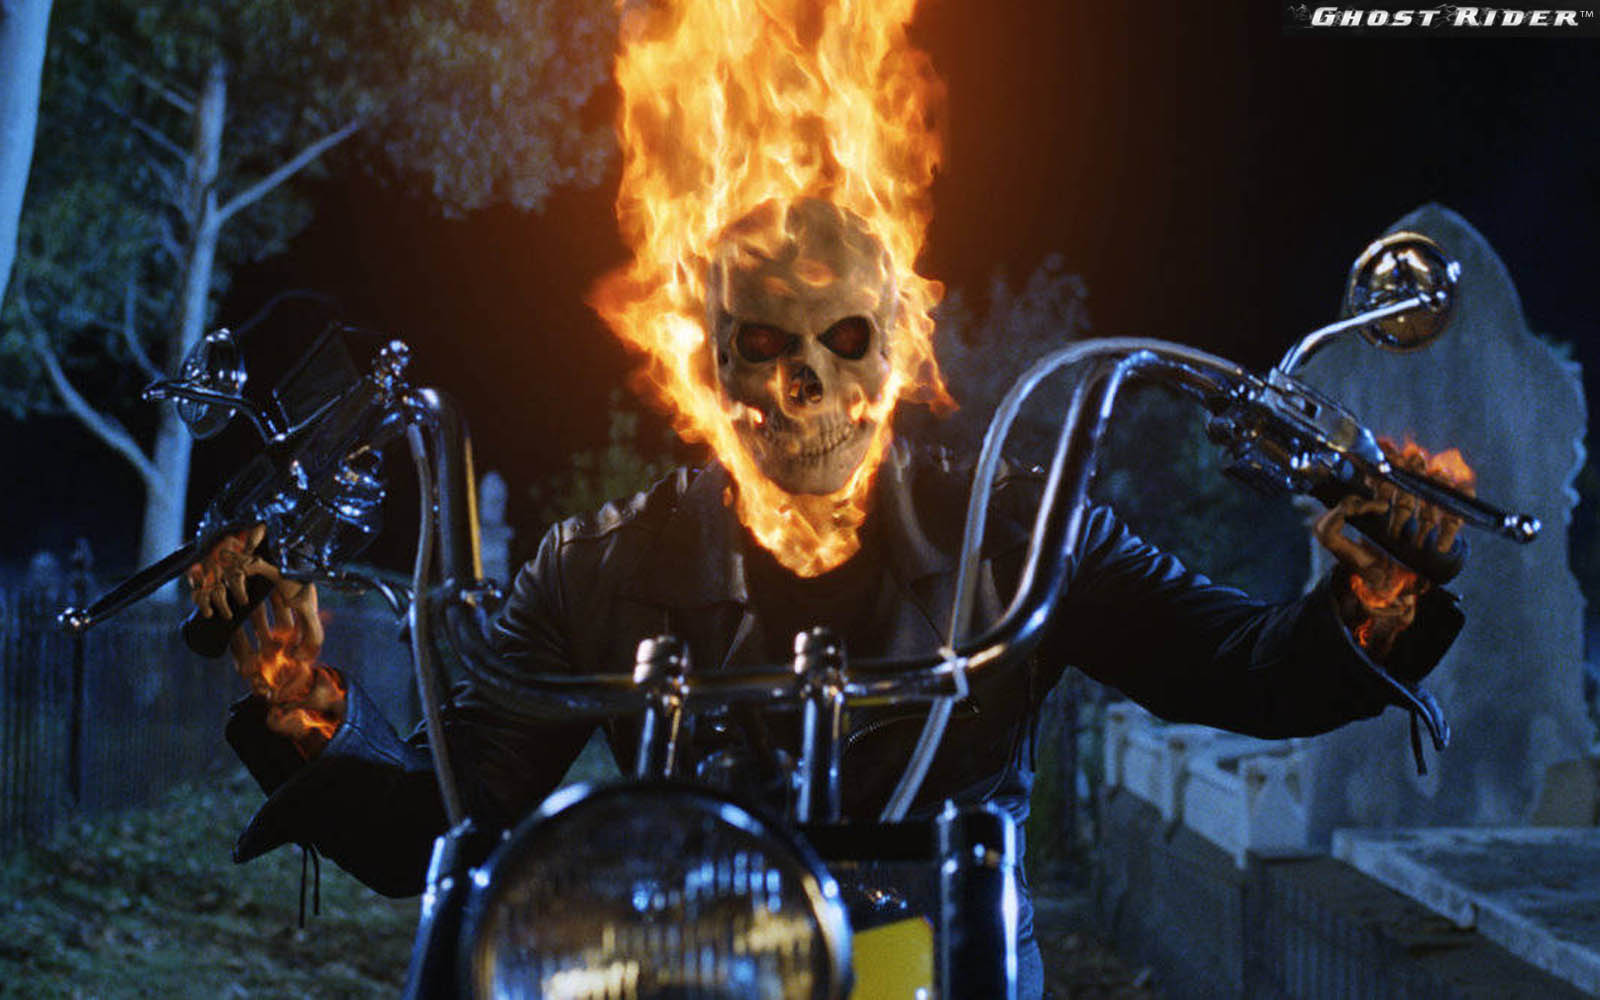 wallpapers ghost rider wallpapers ghost rider background new ghost 1600x1000